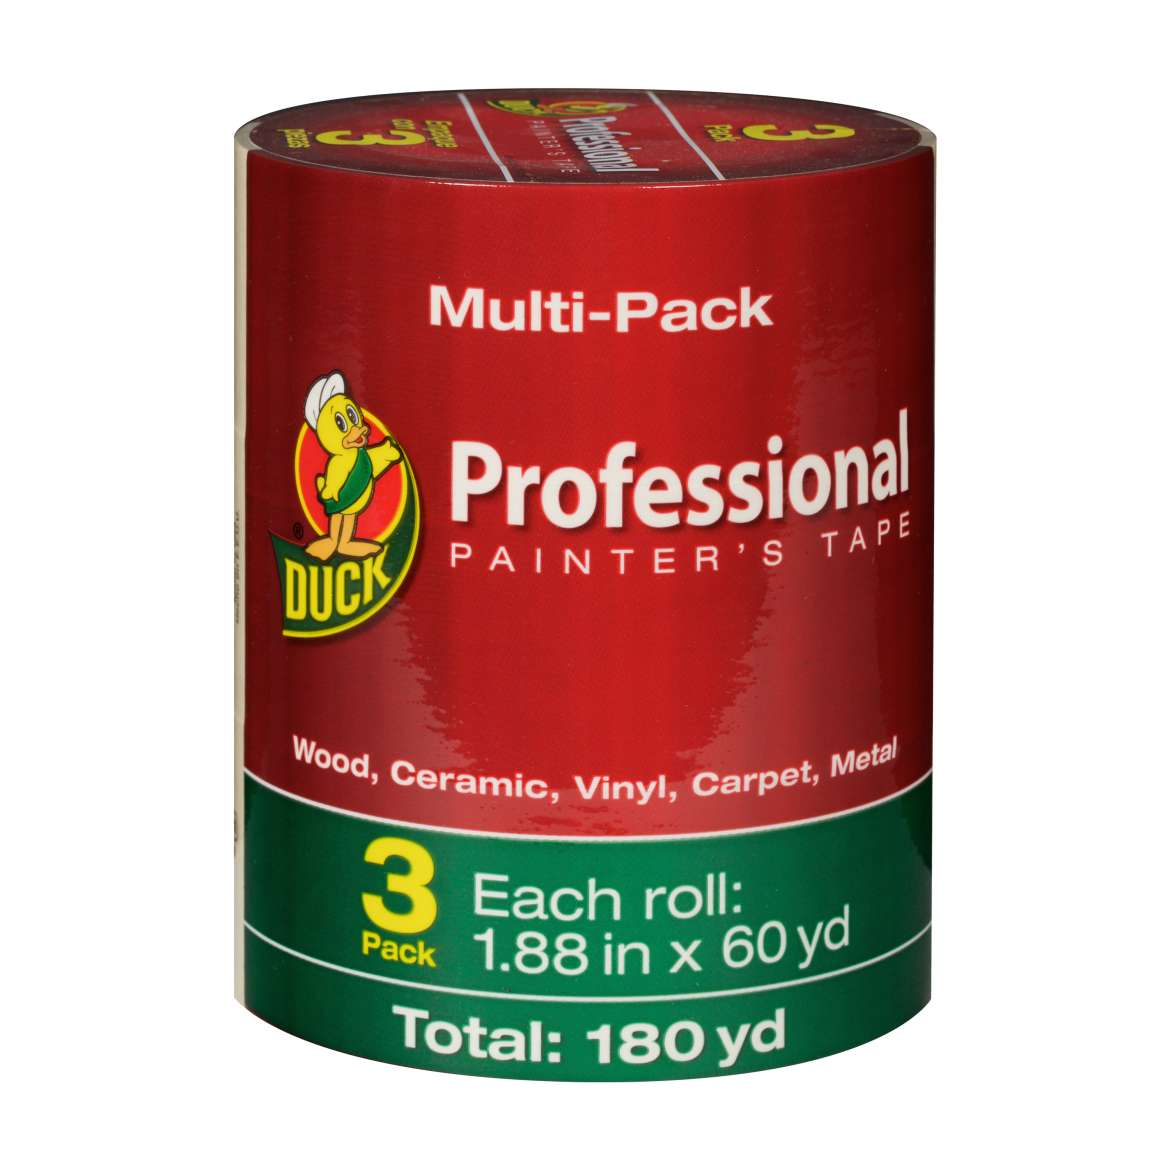 Duck® Brand Professional Painter's Tape - Beige, 3 pk, 1.88 in. x 60 yd. Image